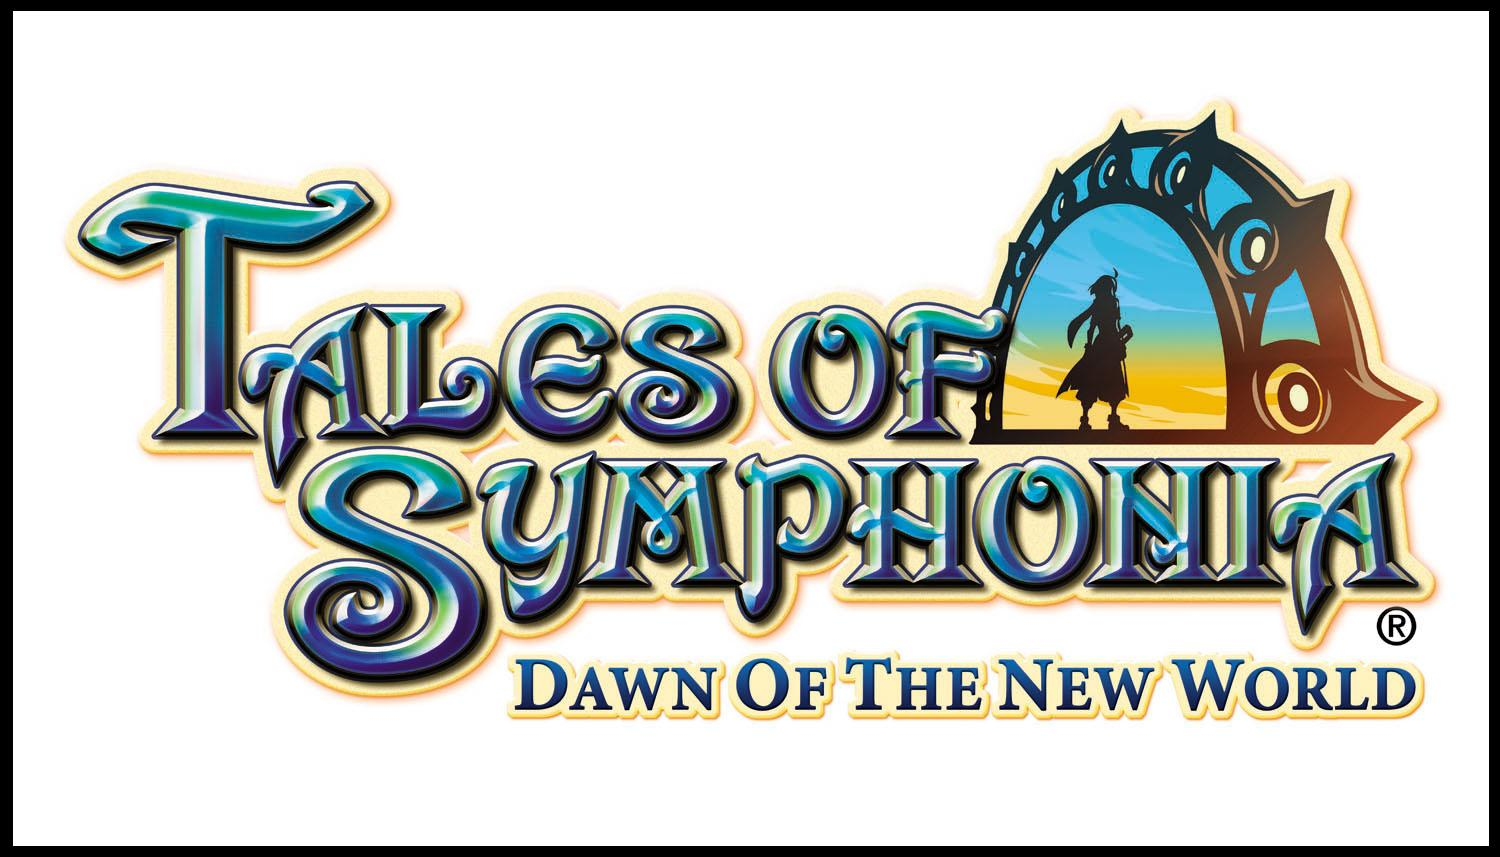 tales_of_symphonia_dawn_of_the_new_world